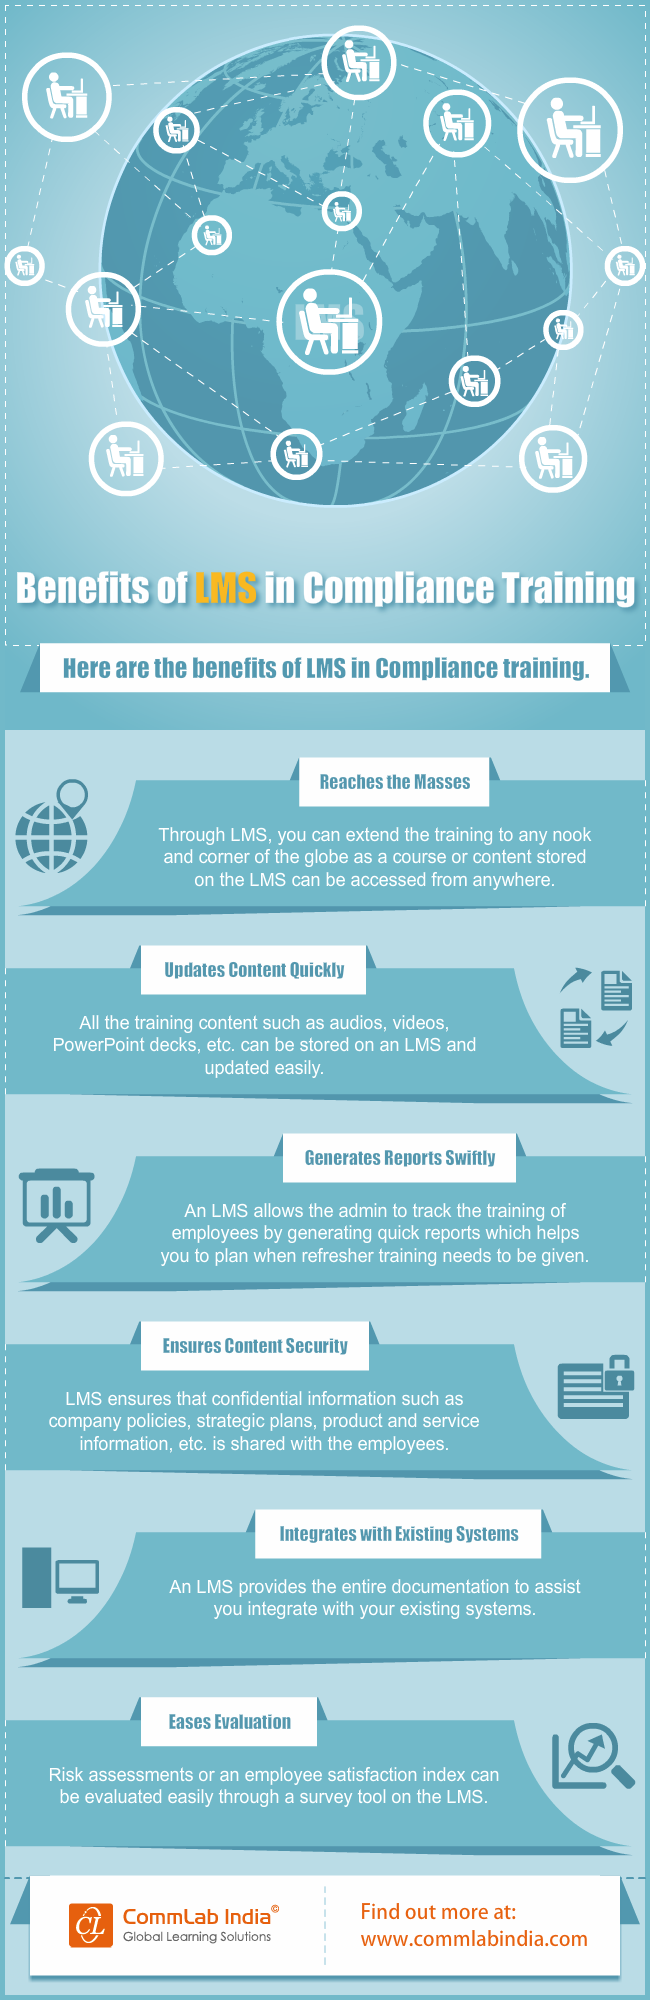 Benefits of LMS in Compliance Training [Infographic]